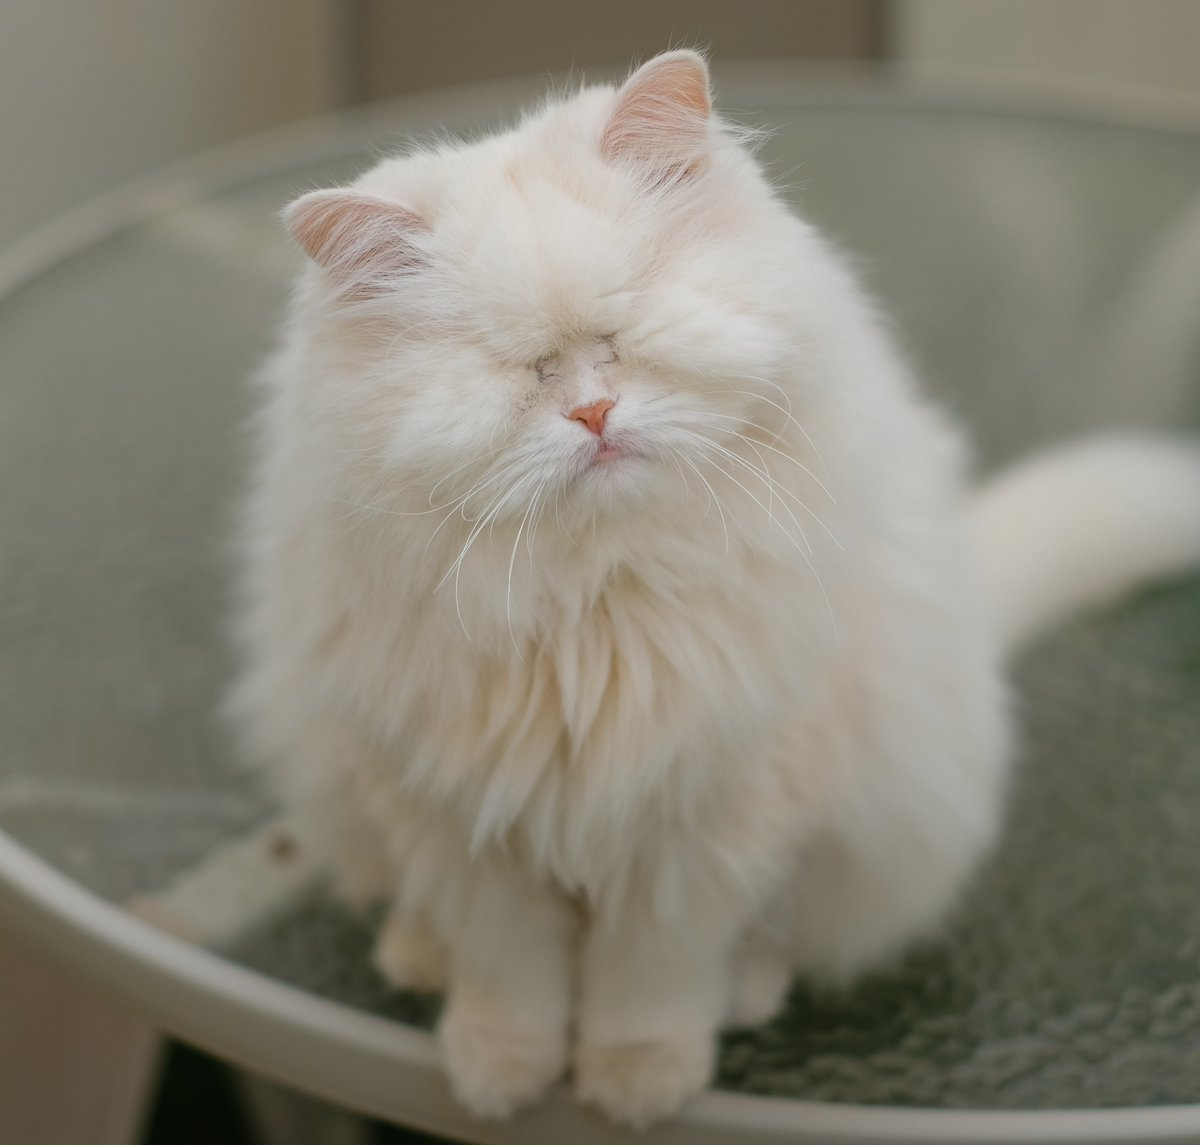 Are you talkin&#39; to me?  #jellybellyfriday #catsoftwitter #moetblindcat #catsofinstagram<br>http://pic.twitter.com/65hMt4YGpq